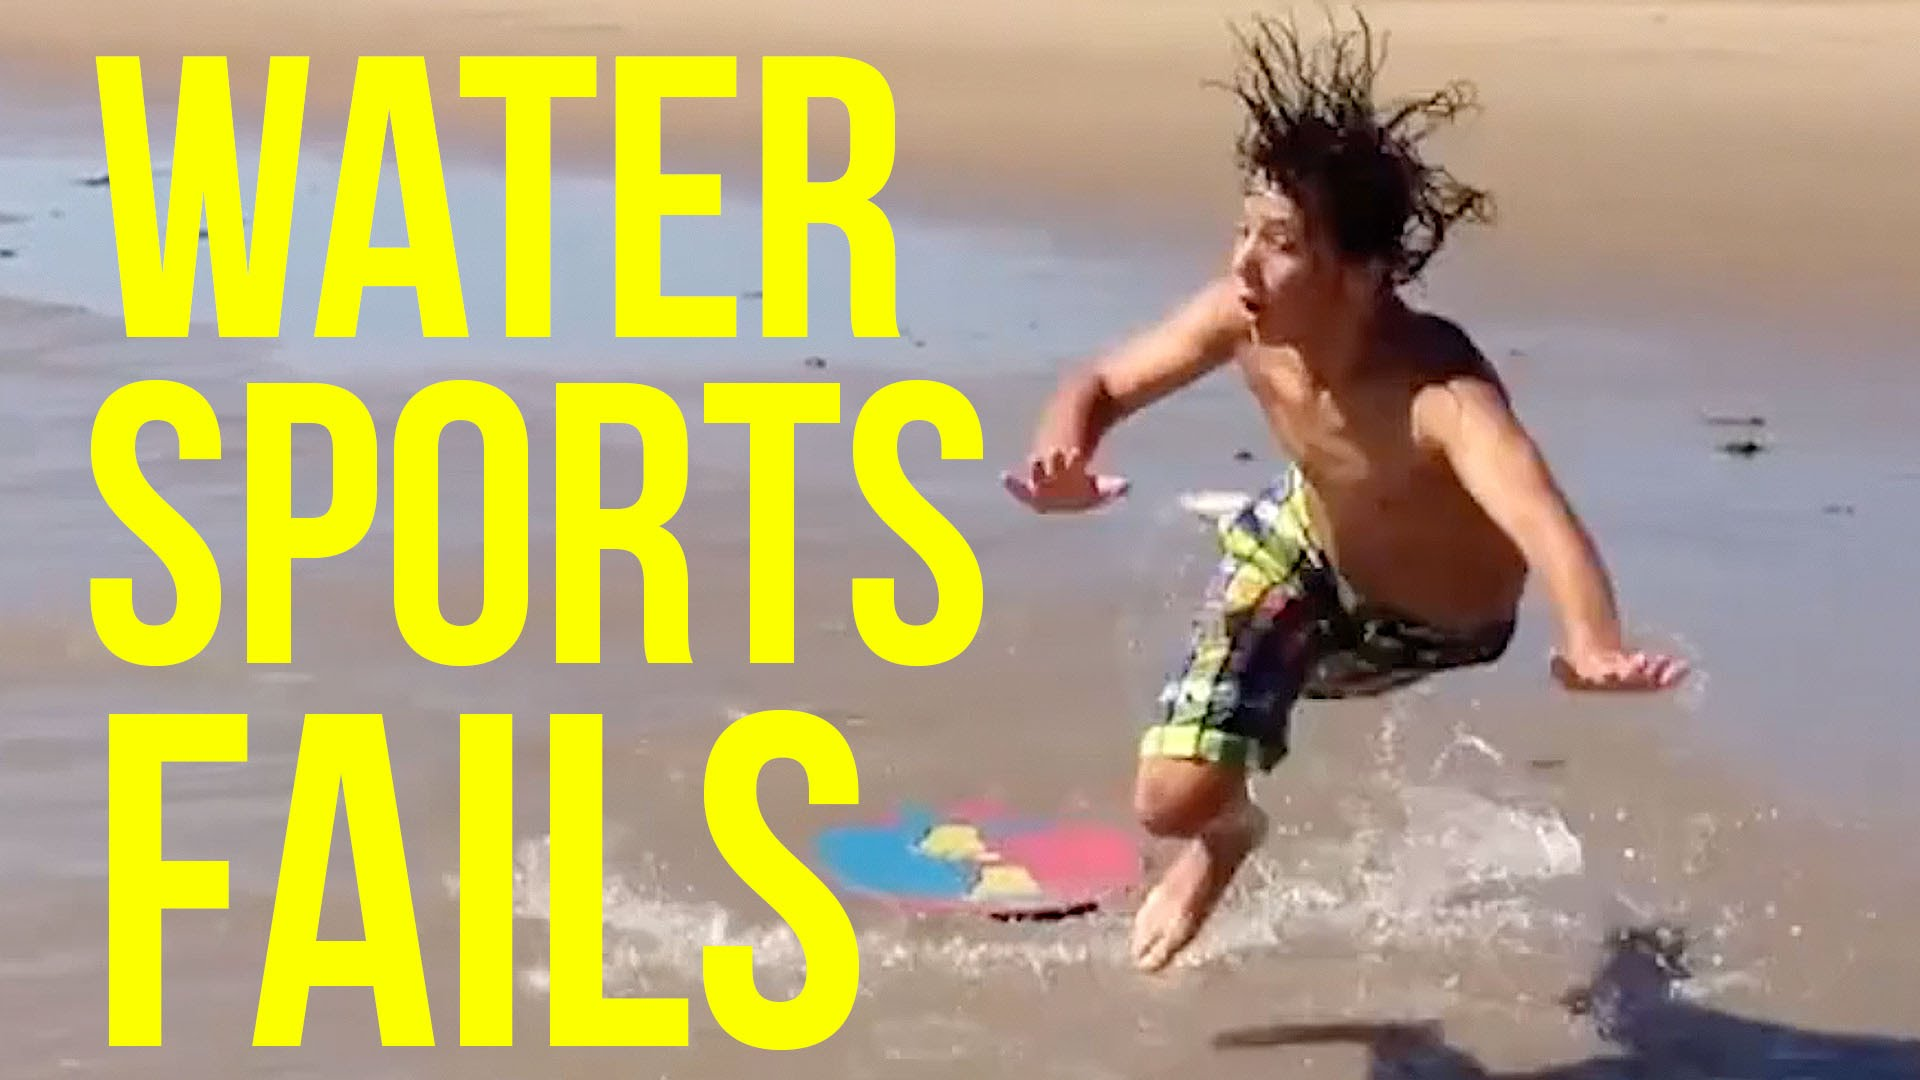 Ultimate Water Sports Fails Compilation – FailArmy